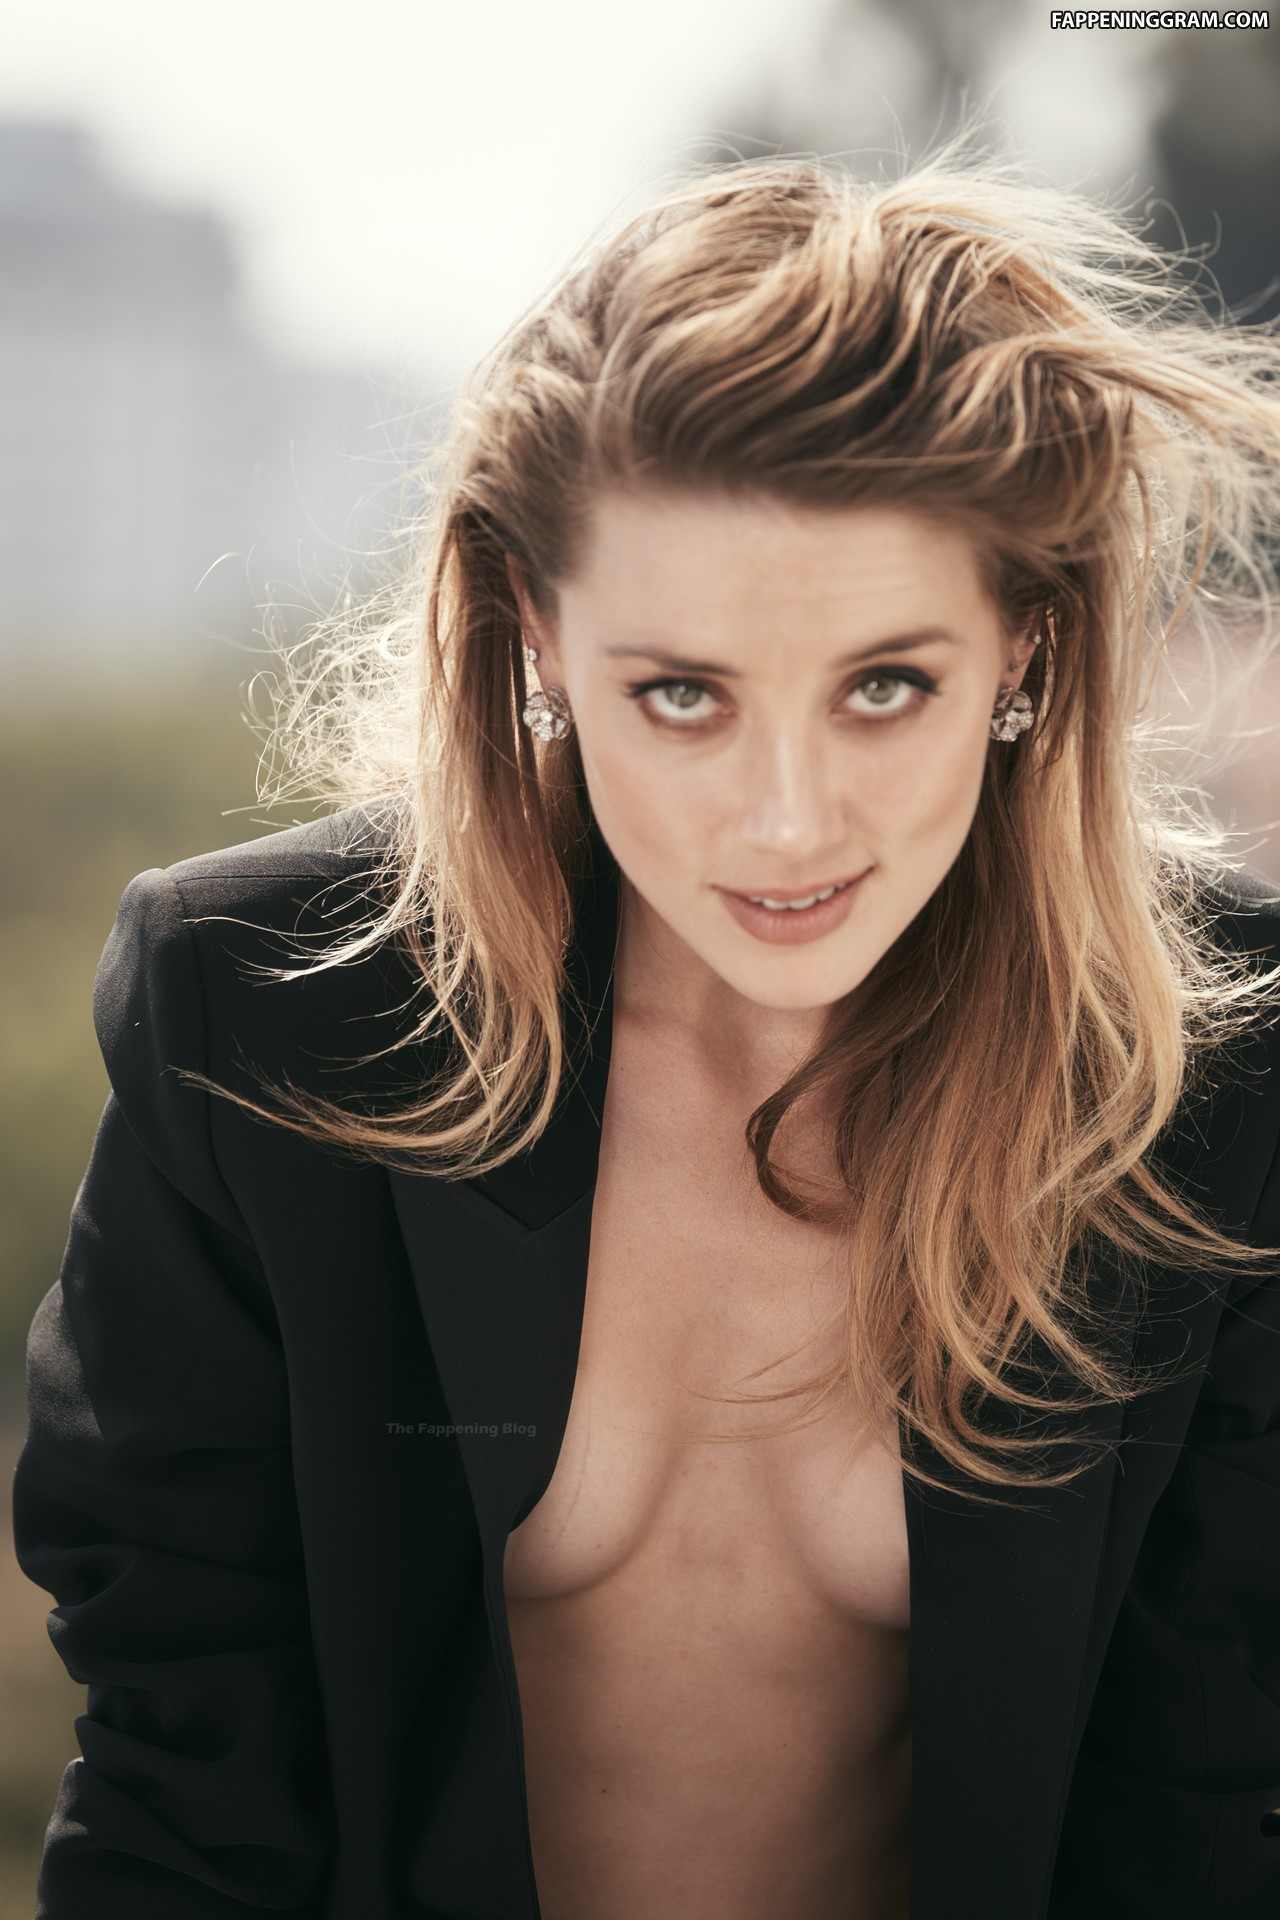 https://cdn.fappeninggram.com/photos/amber-heard/amber-heard-nude998.jpg